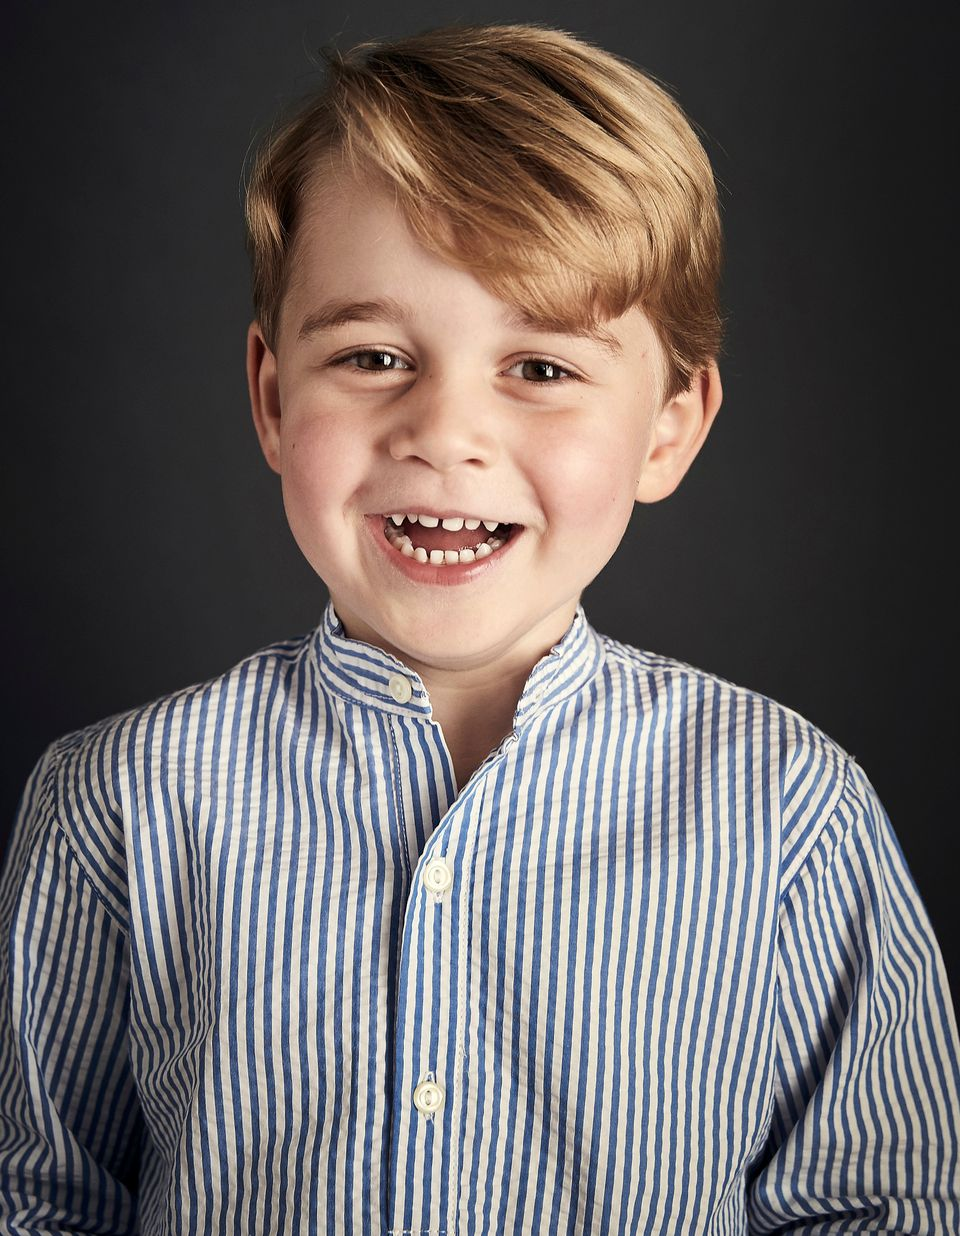 Chris Jackson was chosen by Kensington Palace to take Prince George's official portrait for his fourth